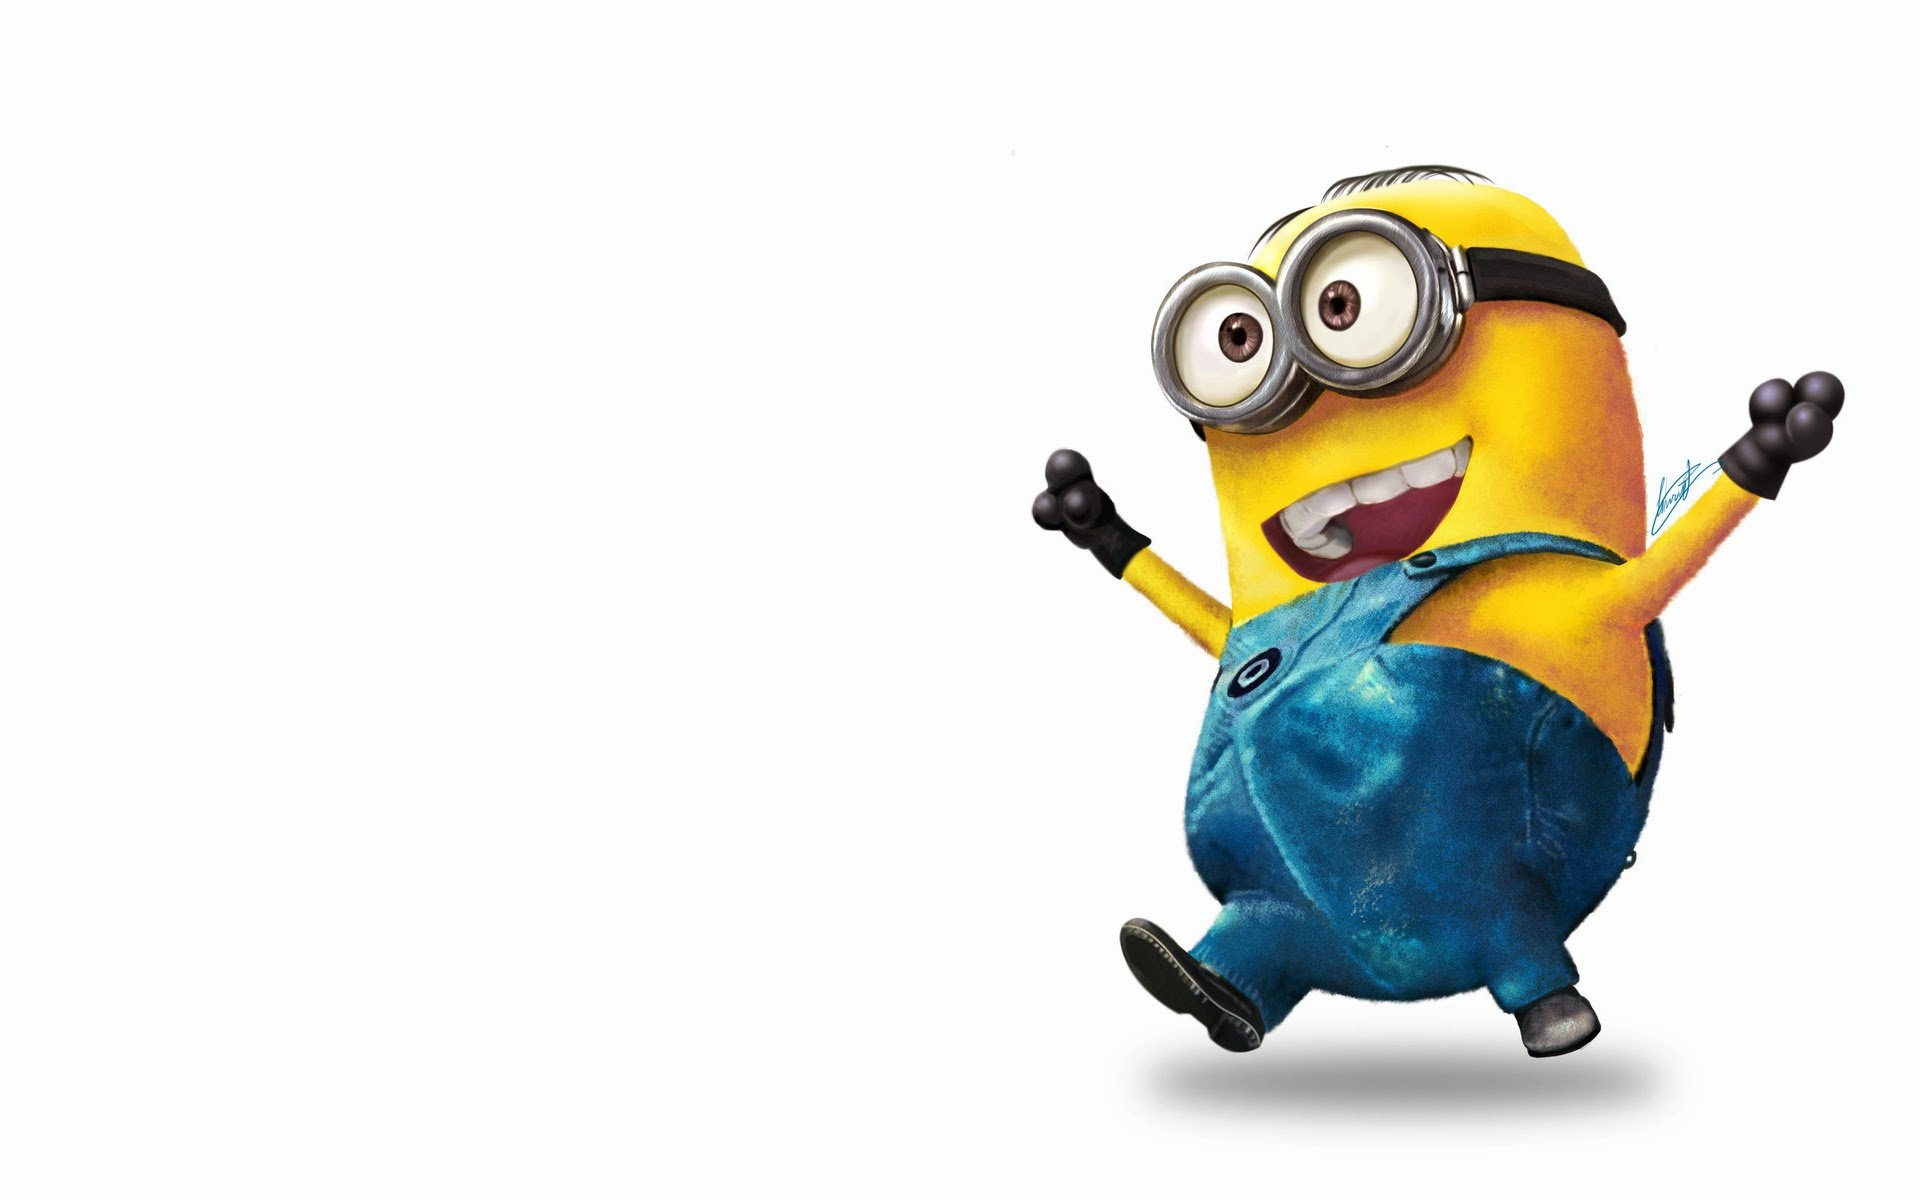 Ideas About Minion Wallpaper On Pinterest Minions Minions 1920x1200